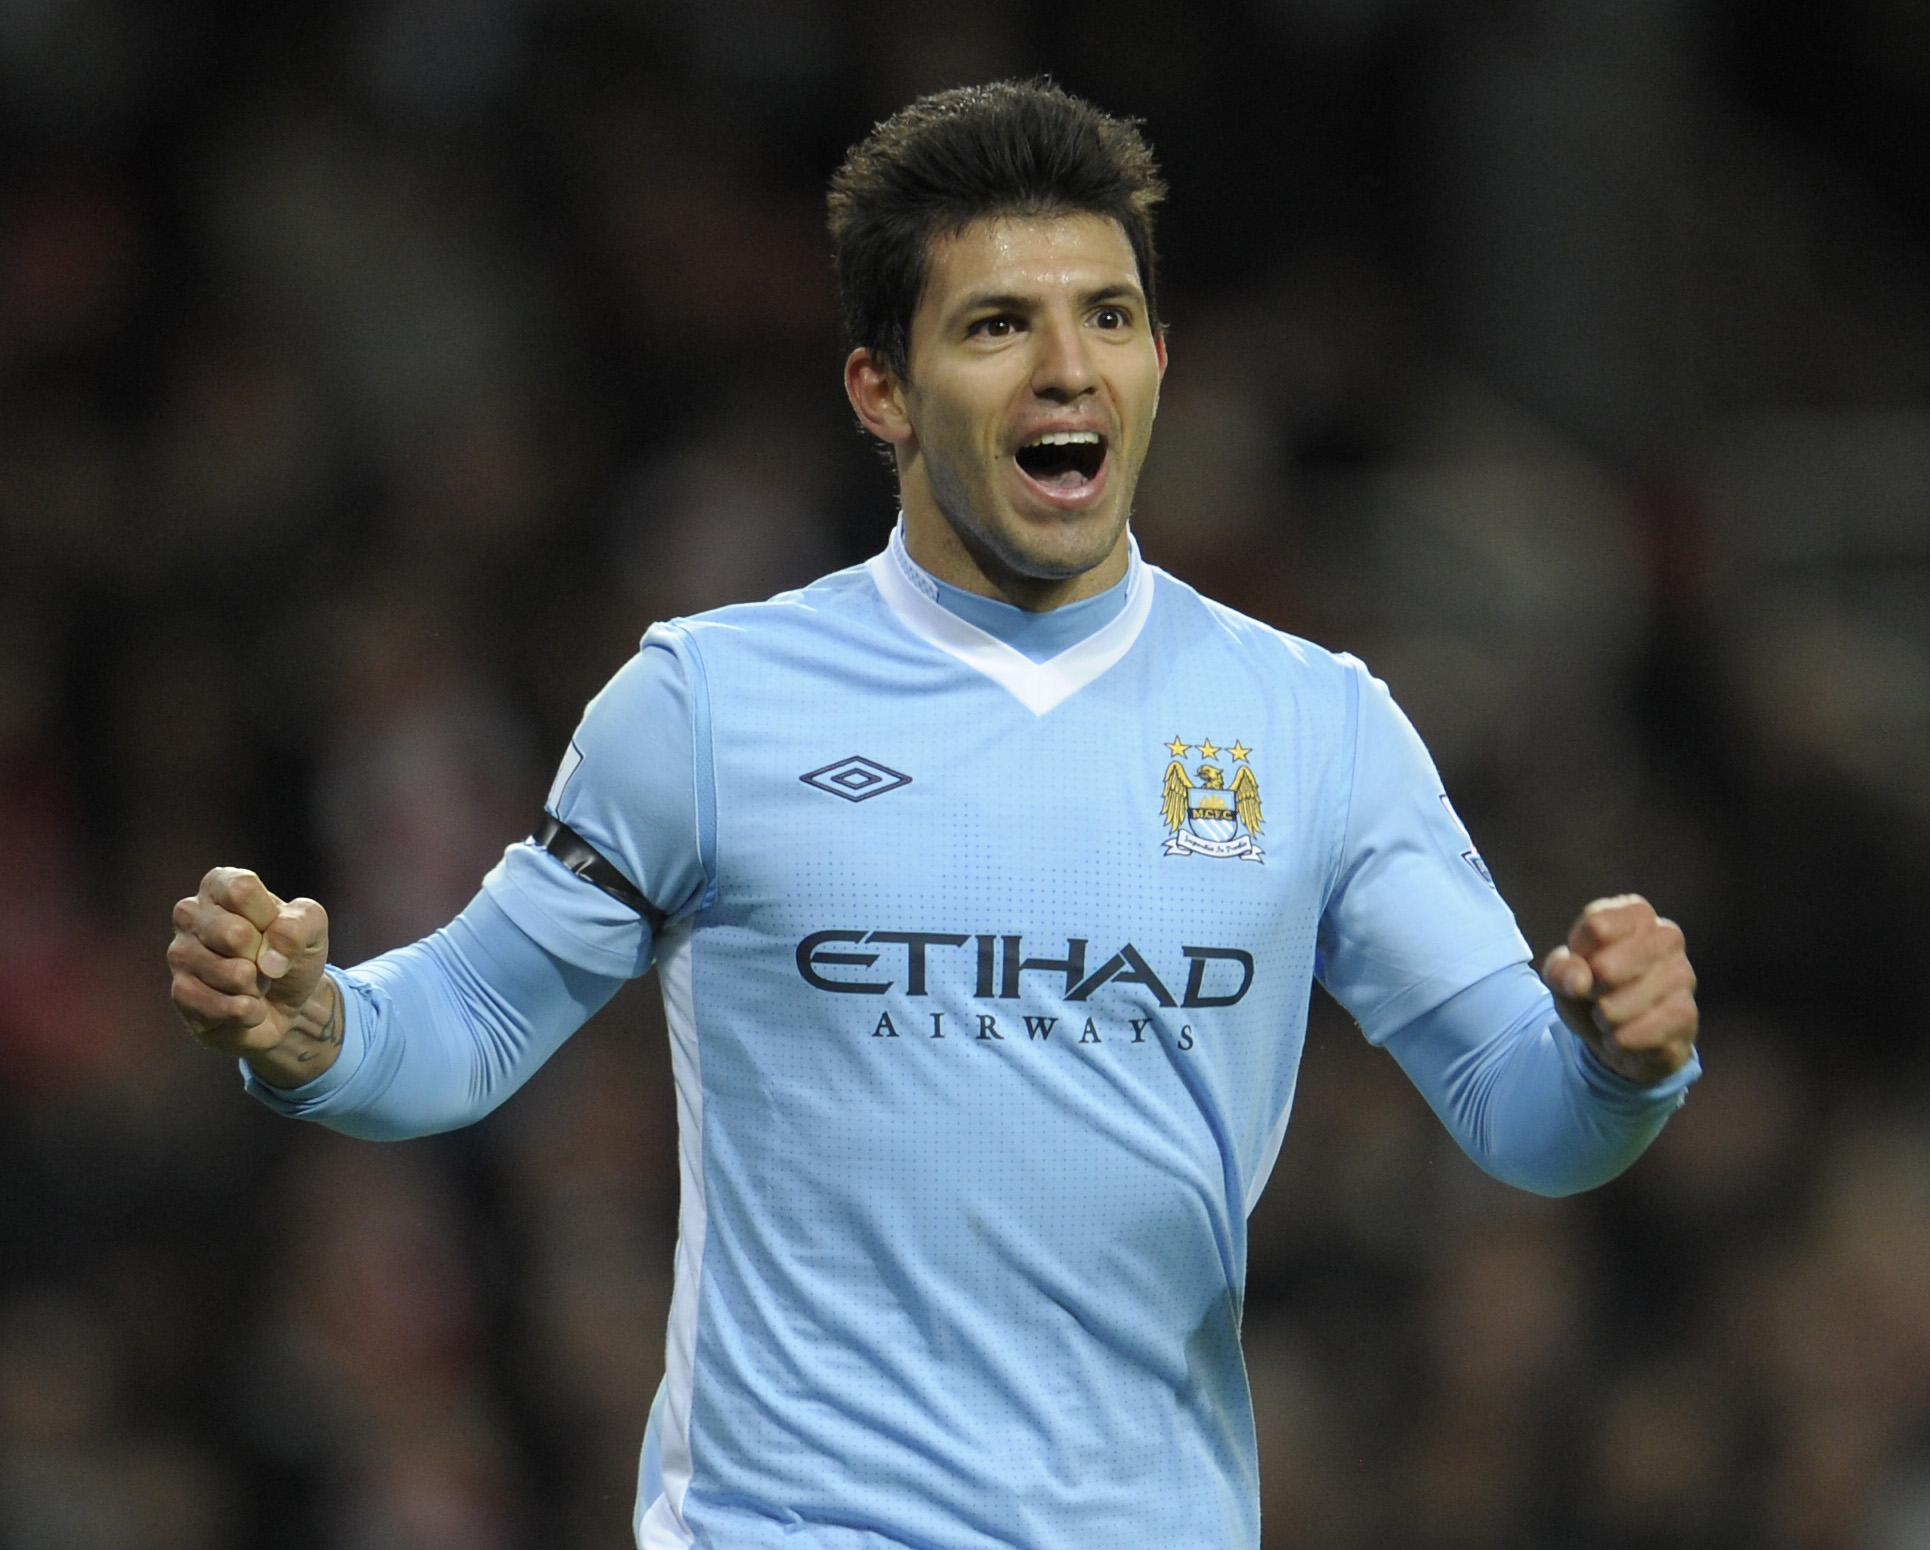 Aguero has excelled for City since signing in 2011